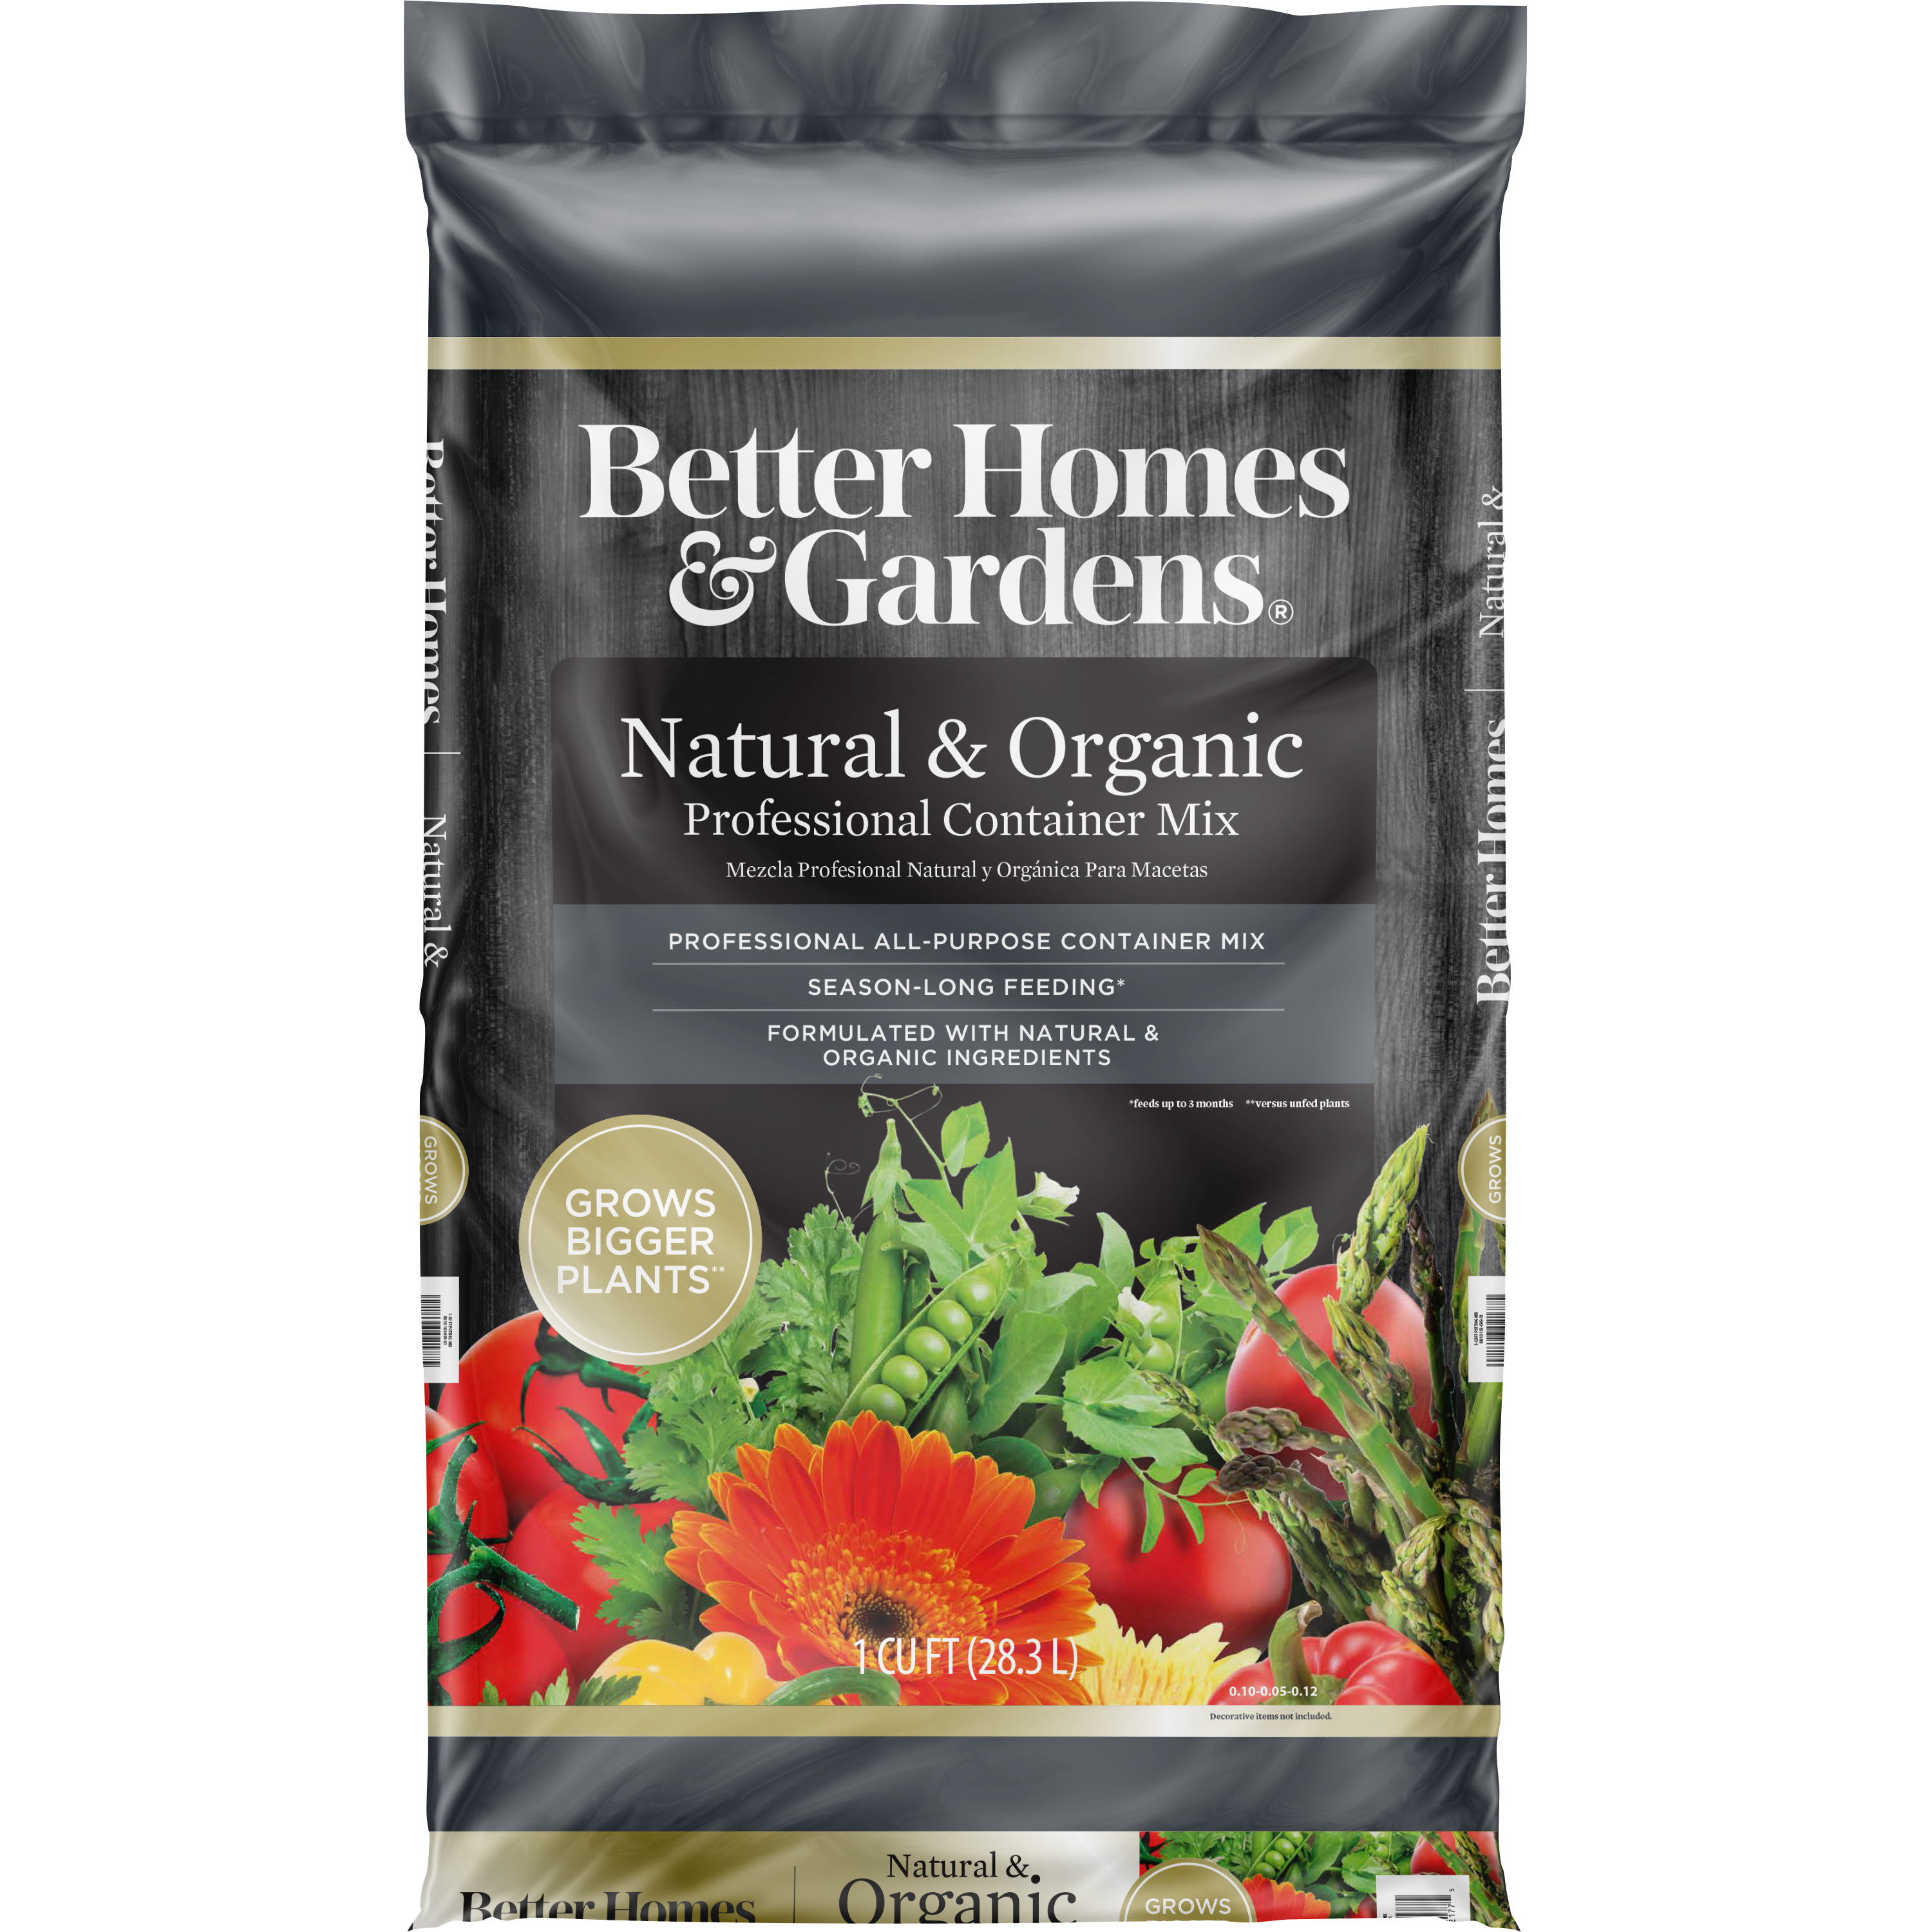 Better Homes & Gardens® Natural & Organic Professional Container Soil Mix, 6 Quart